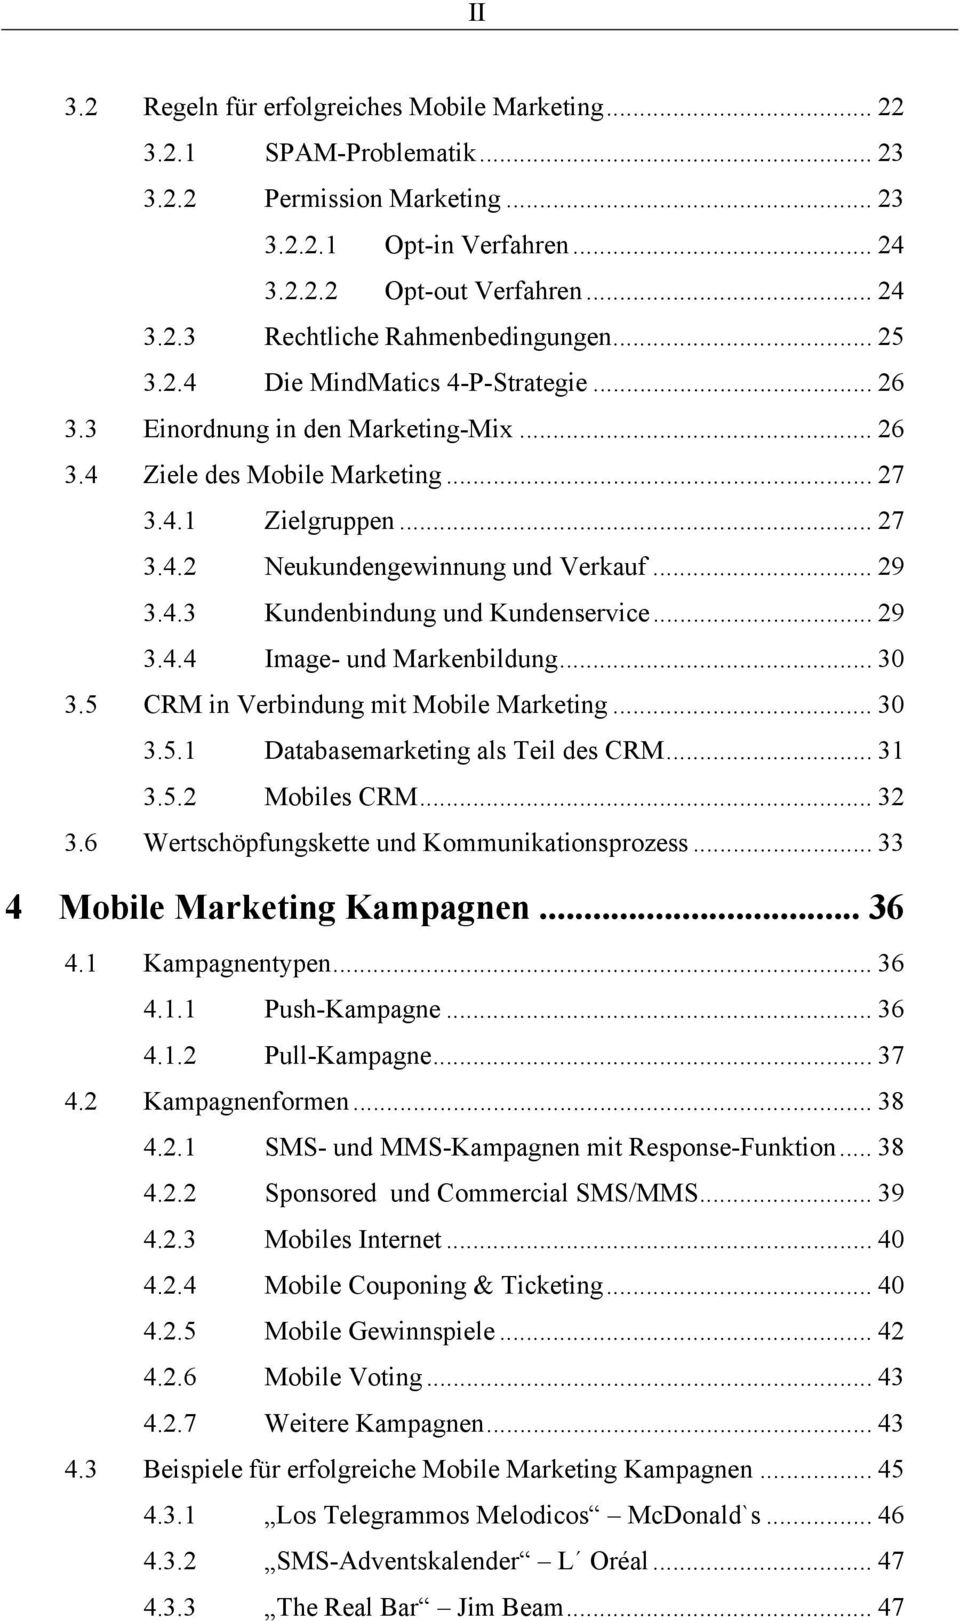 .. 29 3.4.4 Image- und Markenbildung... 30 3.5 CRM in Verbindung mit Mobile Marketing... 30 3.5.1 Databasemarketing als Teil des CRM... 31 3.5.2 Mobiles CRM... 32 3.